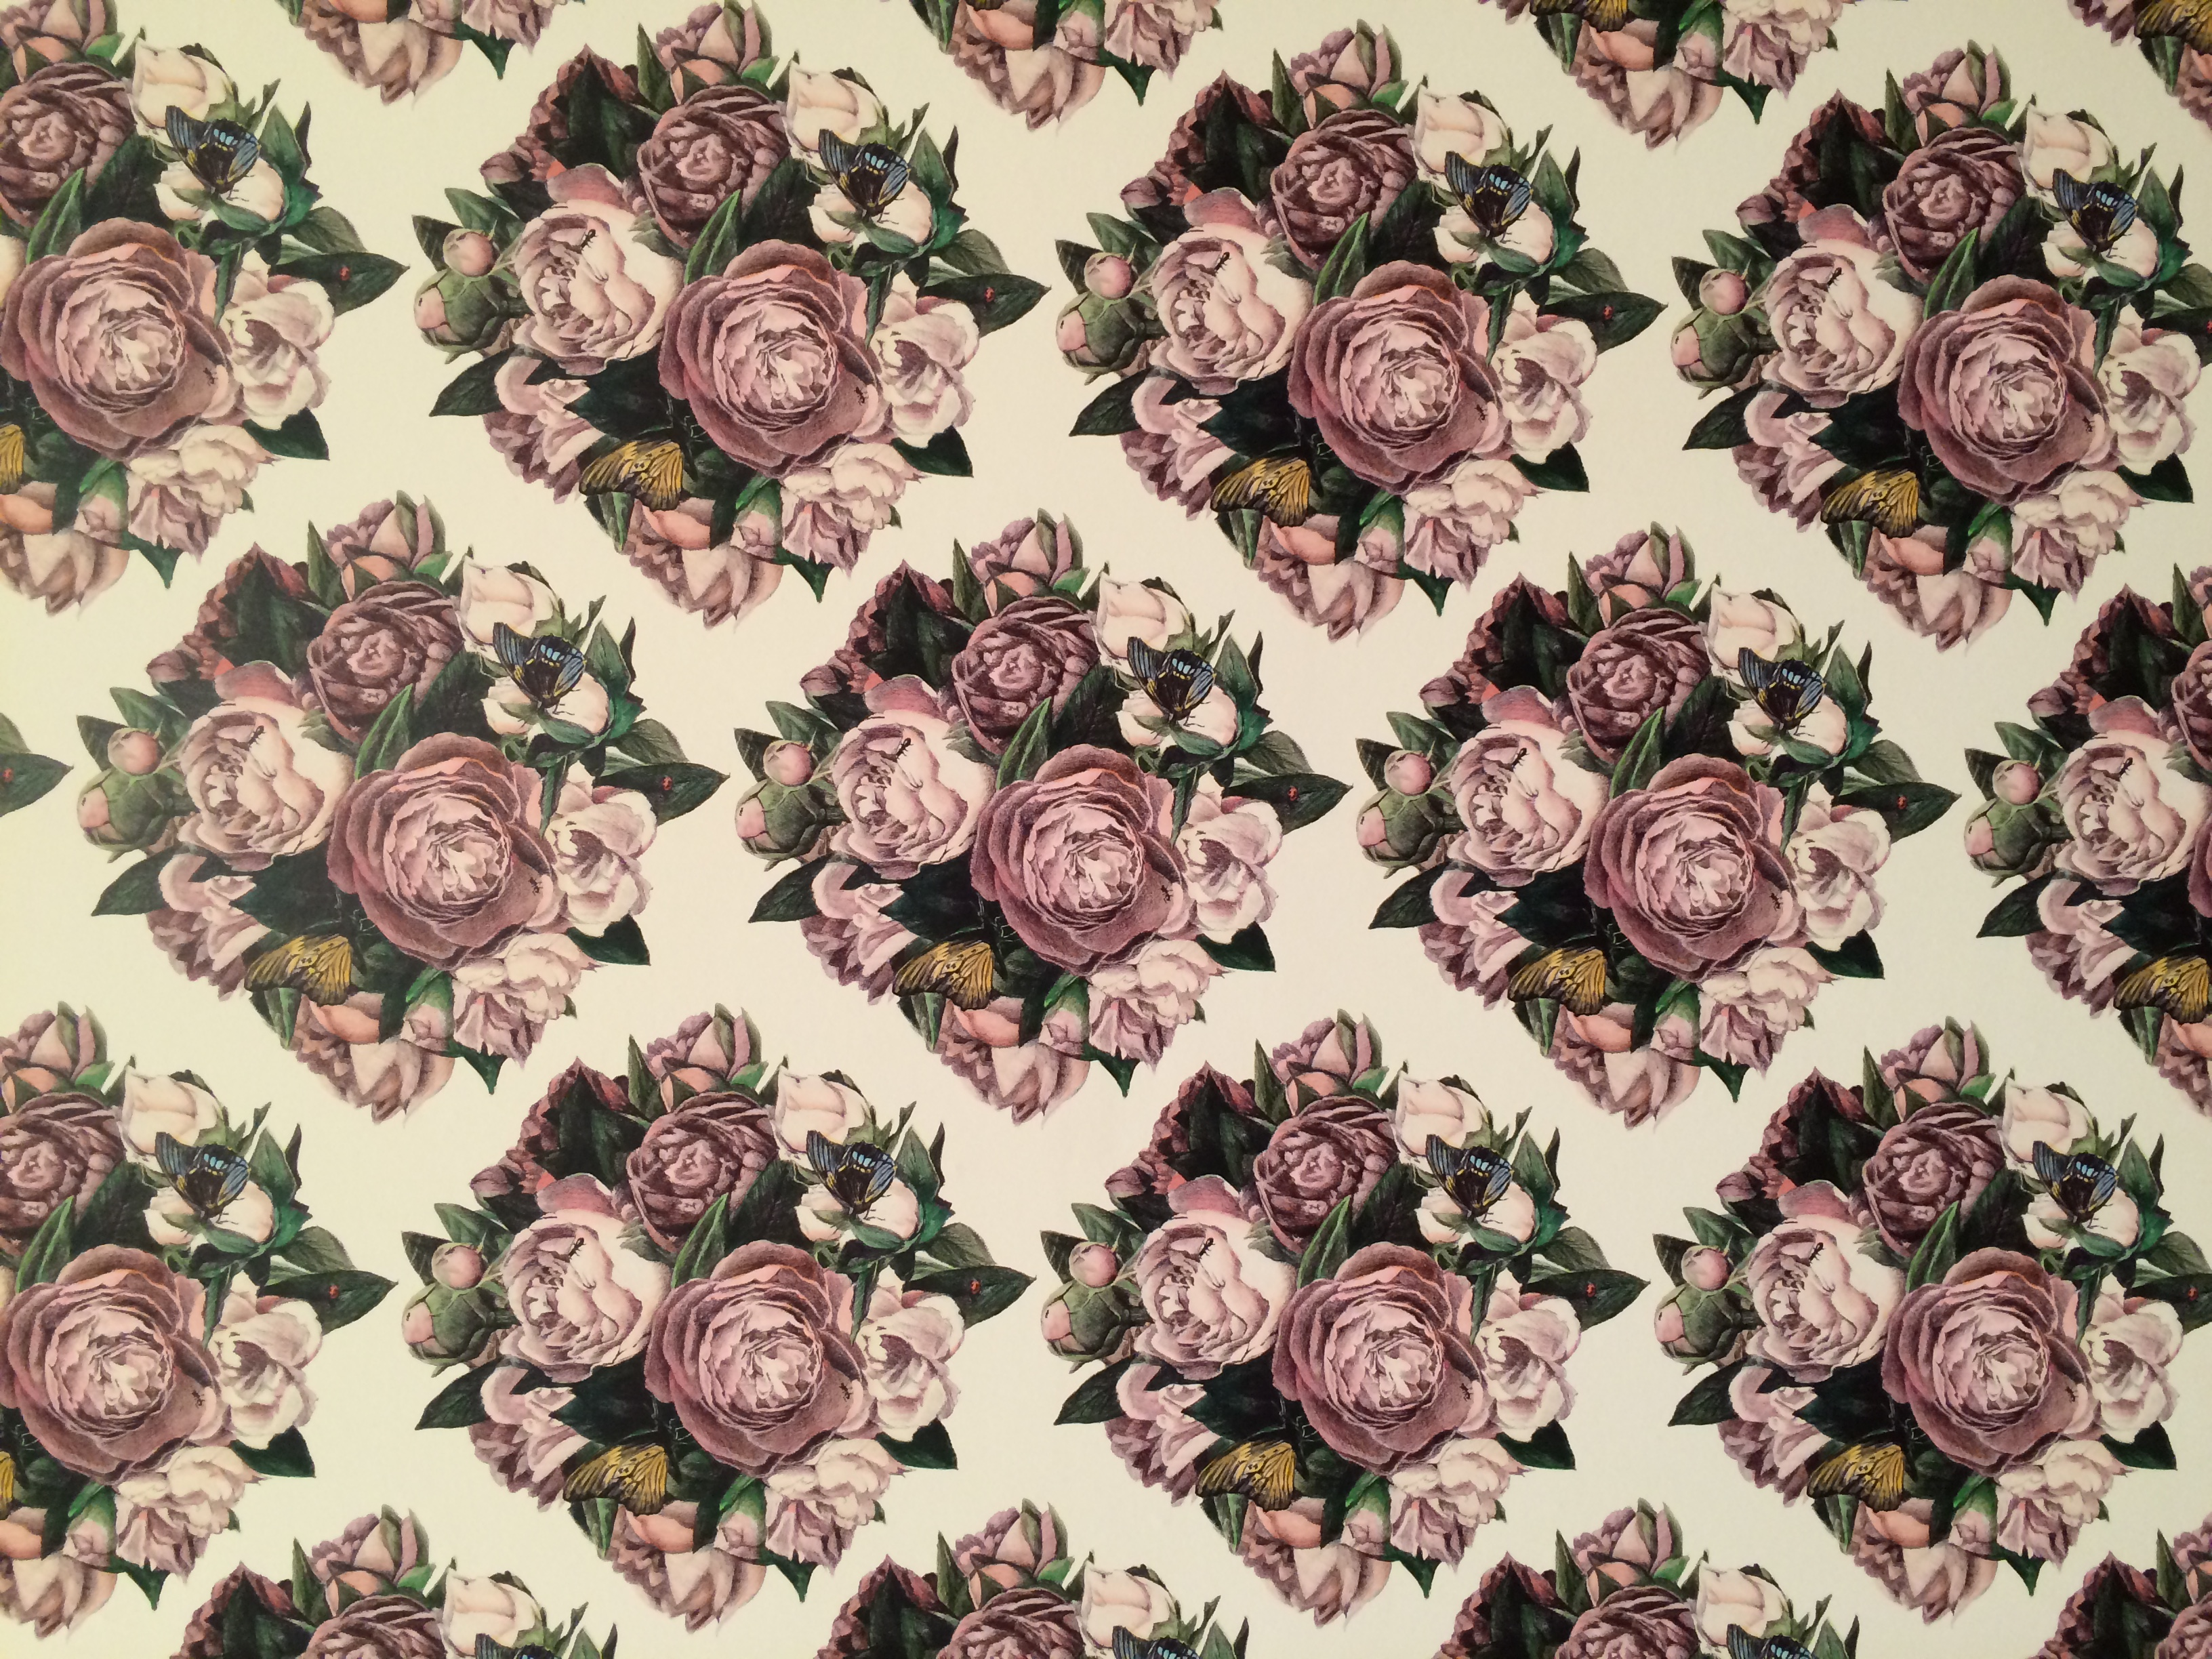 This was a really amazing wallpaper print someone did for a gallery space at Tennessee University